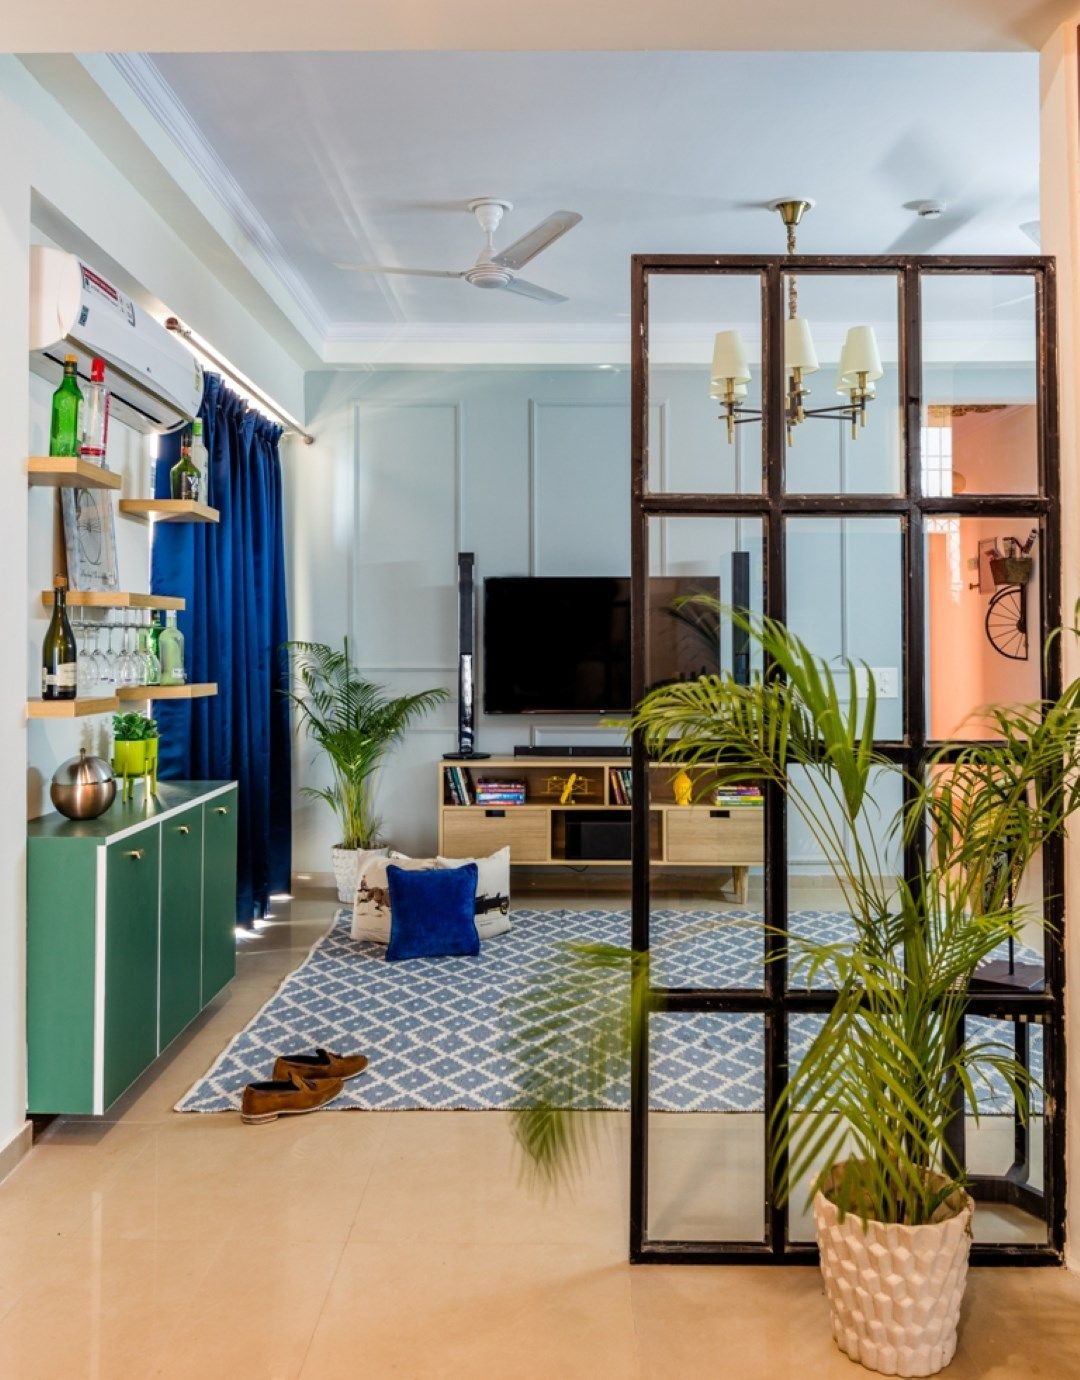 A Calm and Beautiful Home in the busy Noida City | Amusing Interiors - The Architects Diary | Apartment interior, Apartment interior design, Small studio apartment decorating